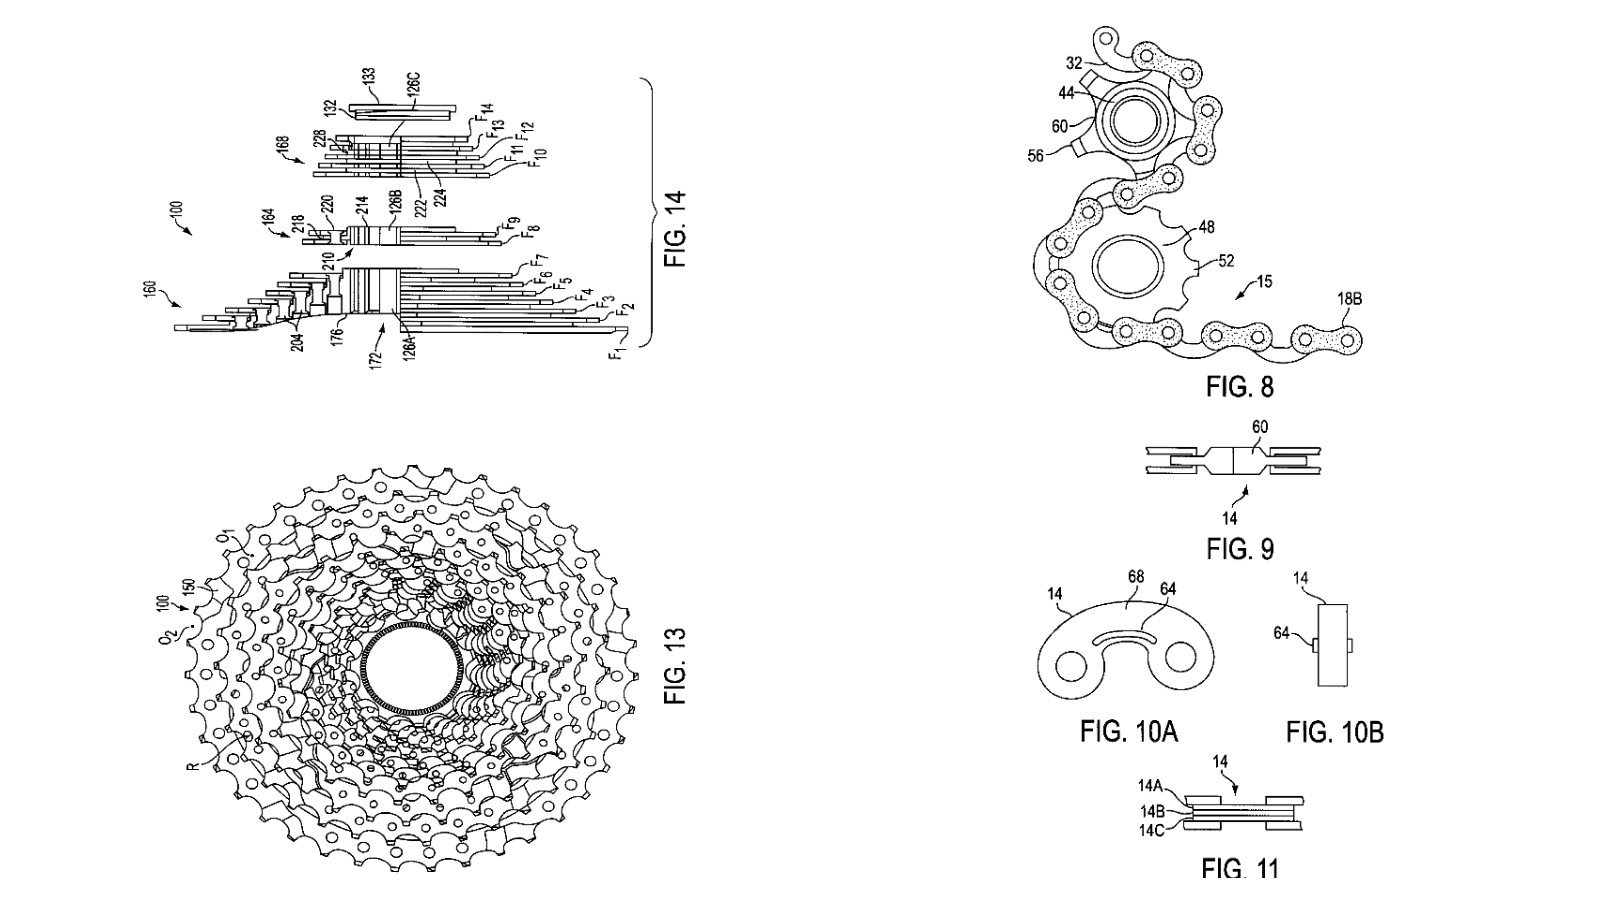 Shimano filed a patent for a 14 speed drivetrain way back in 1999 and it makes for some fascinating reading